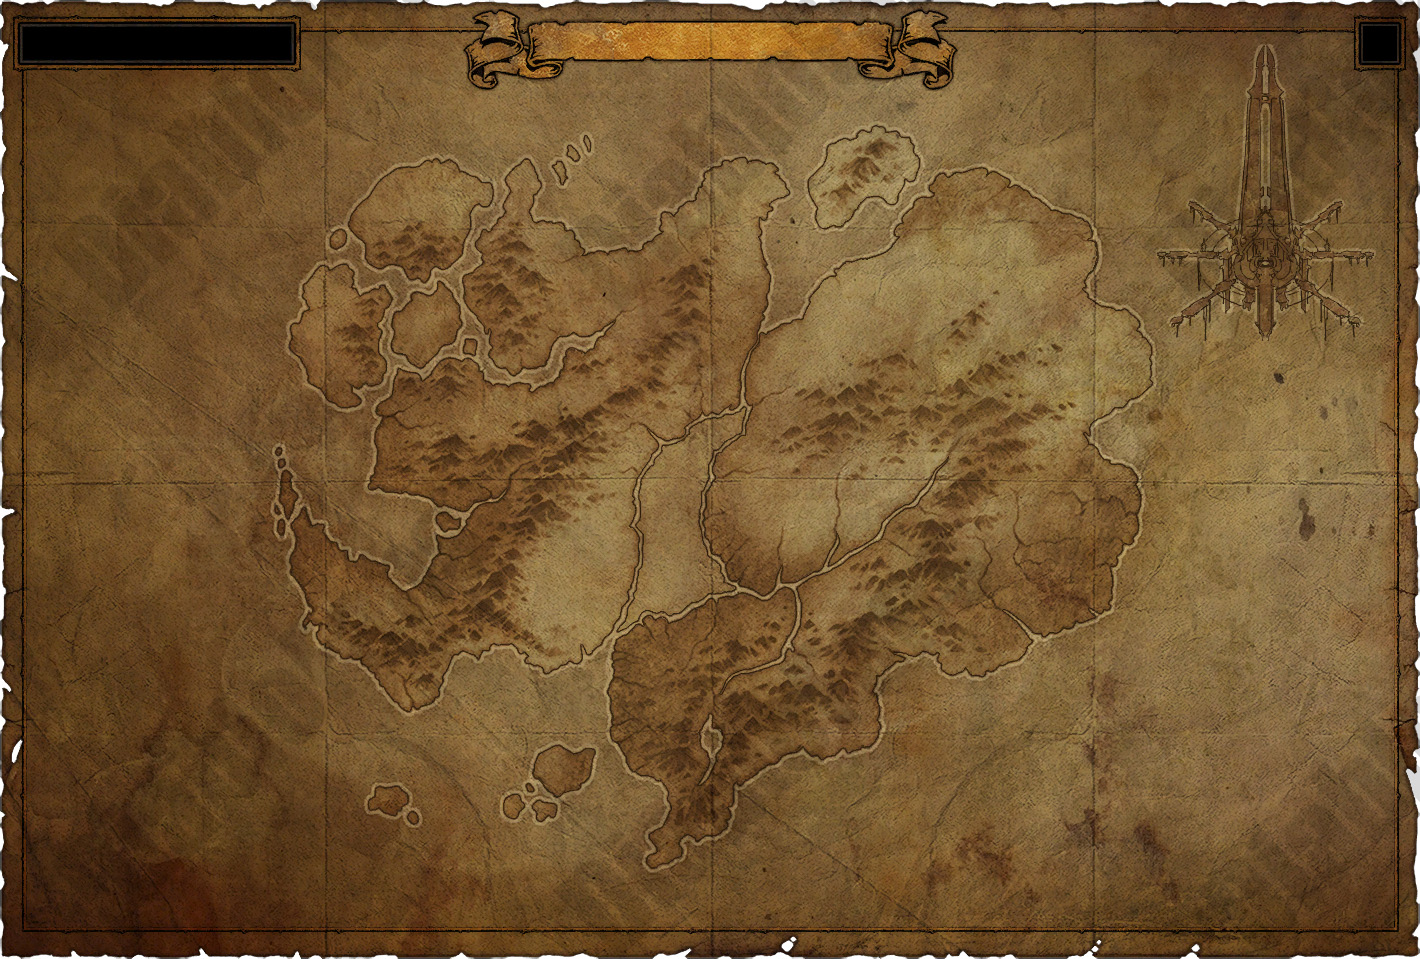 new internal patch adventure mode tutorials maps for all acts call of the ancients and more